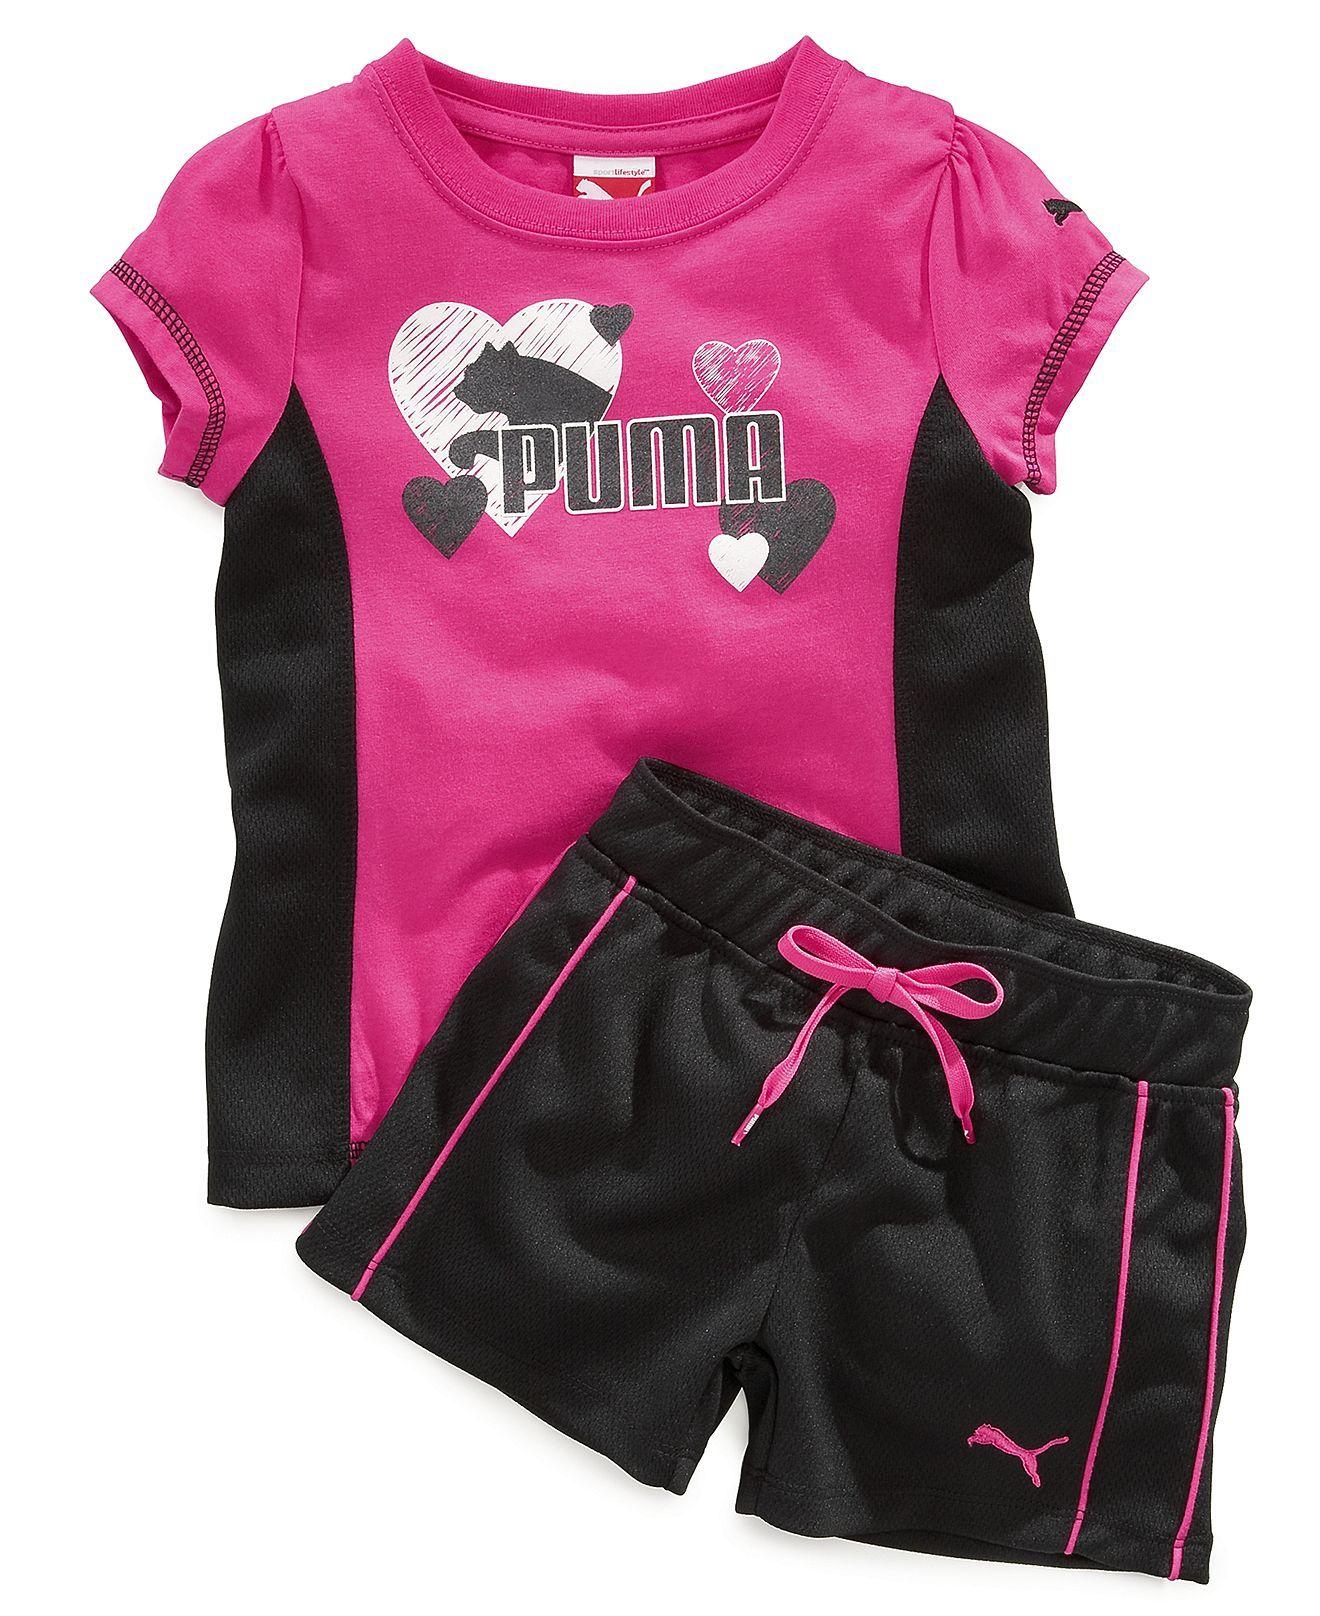 Puma Baby Set Baby Girls Two Piece Shirt and Shorts Kids Shop All